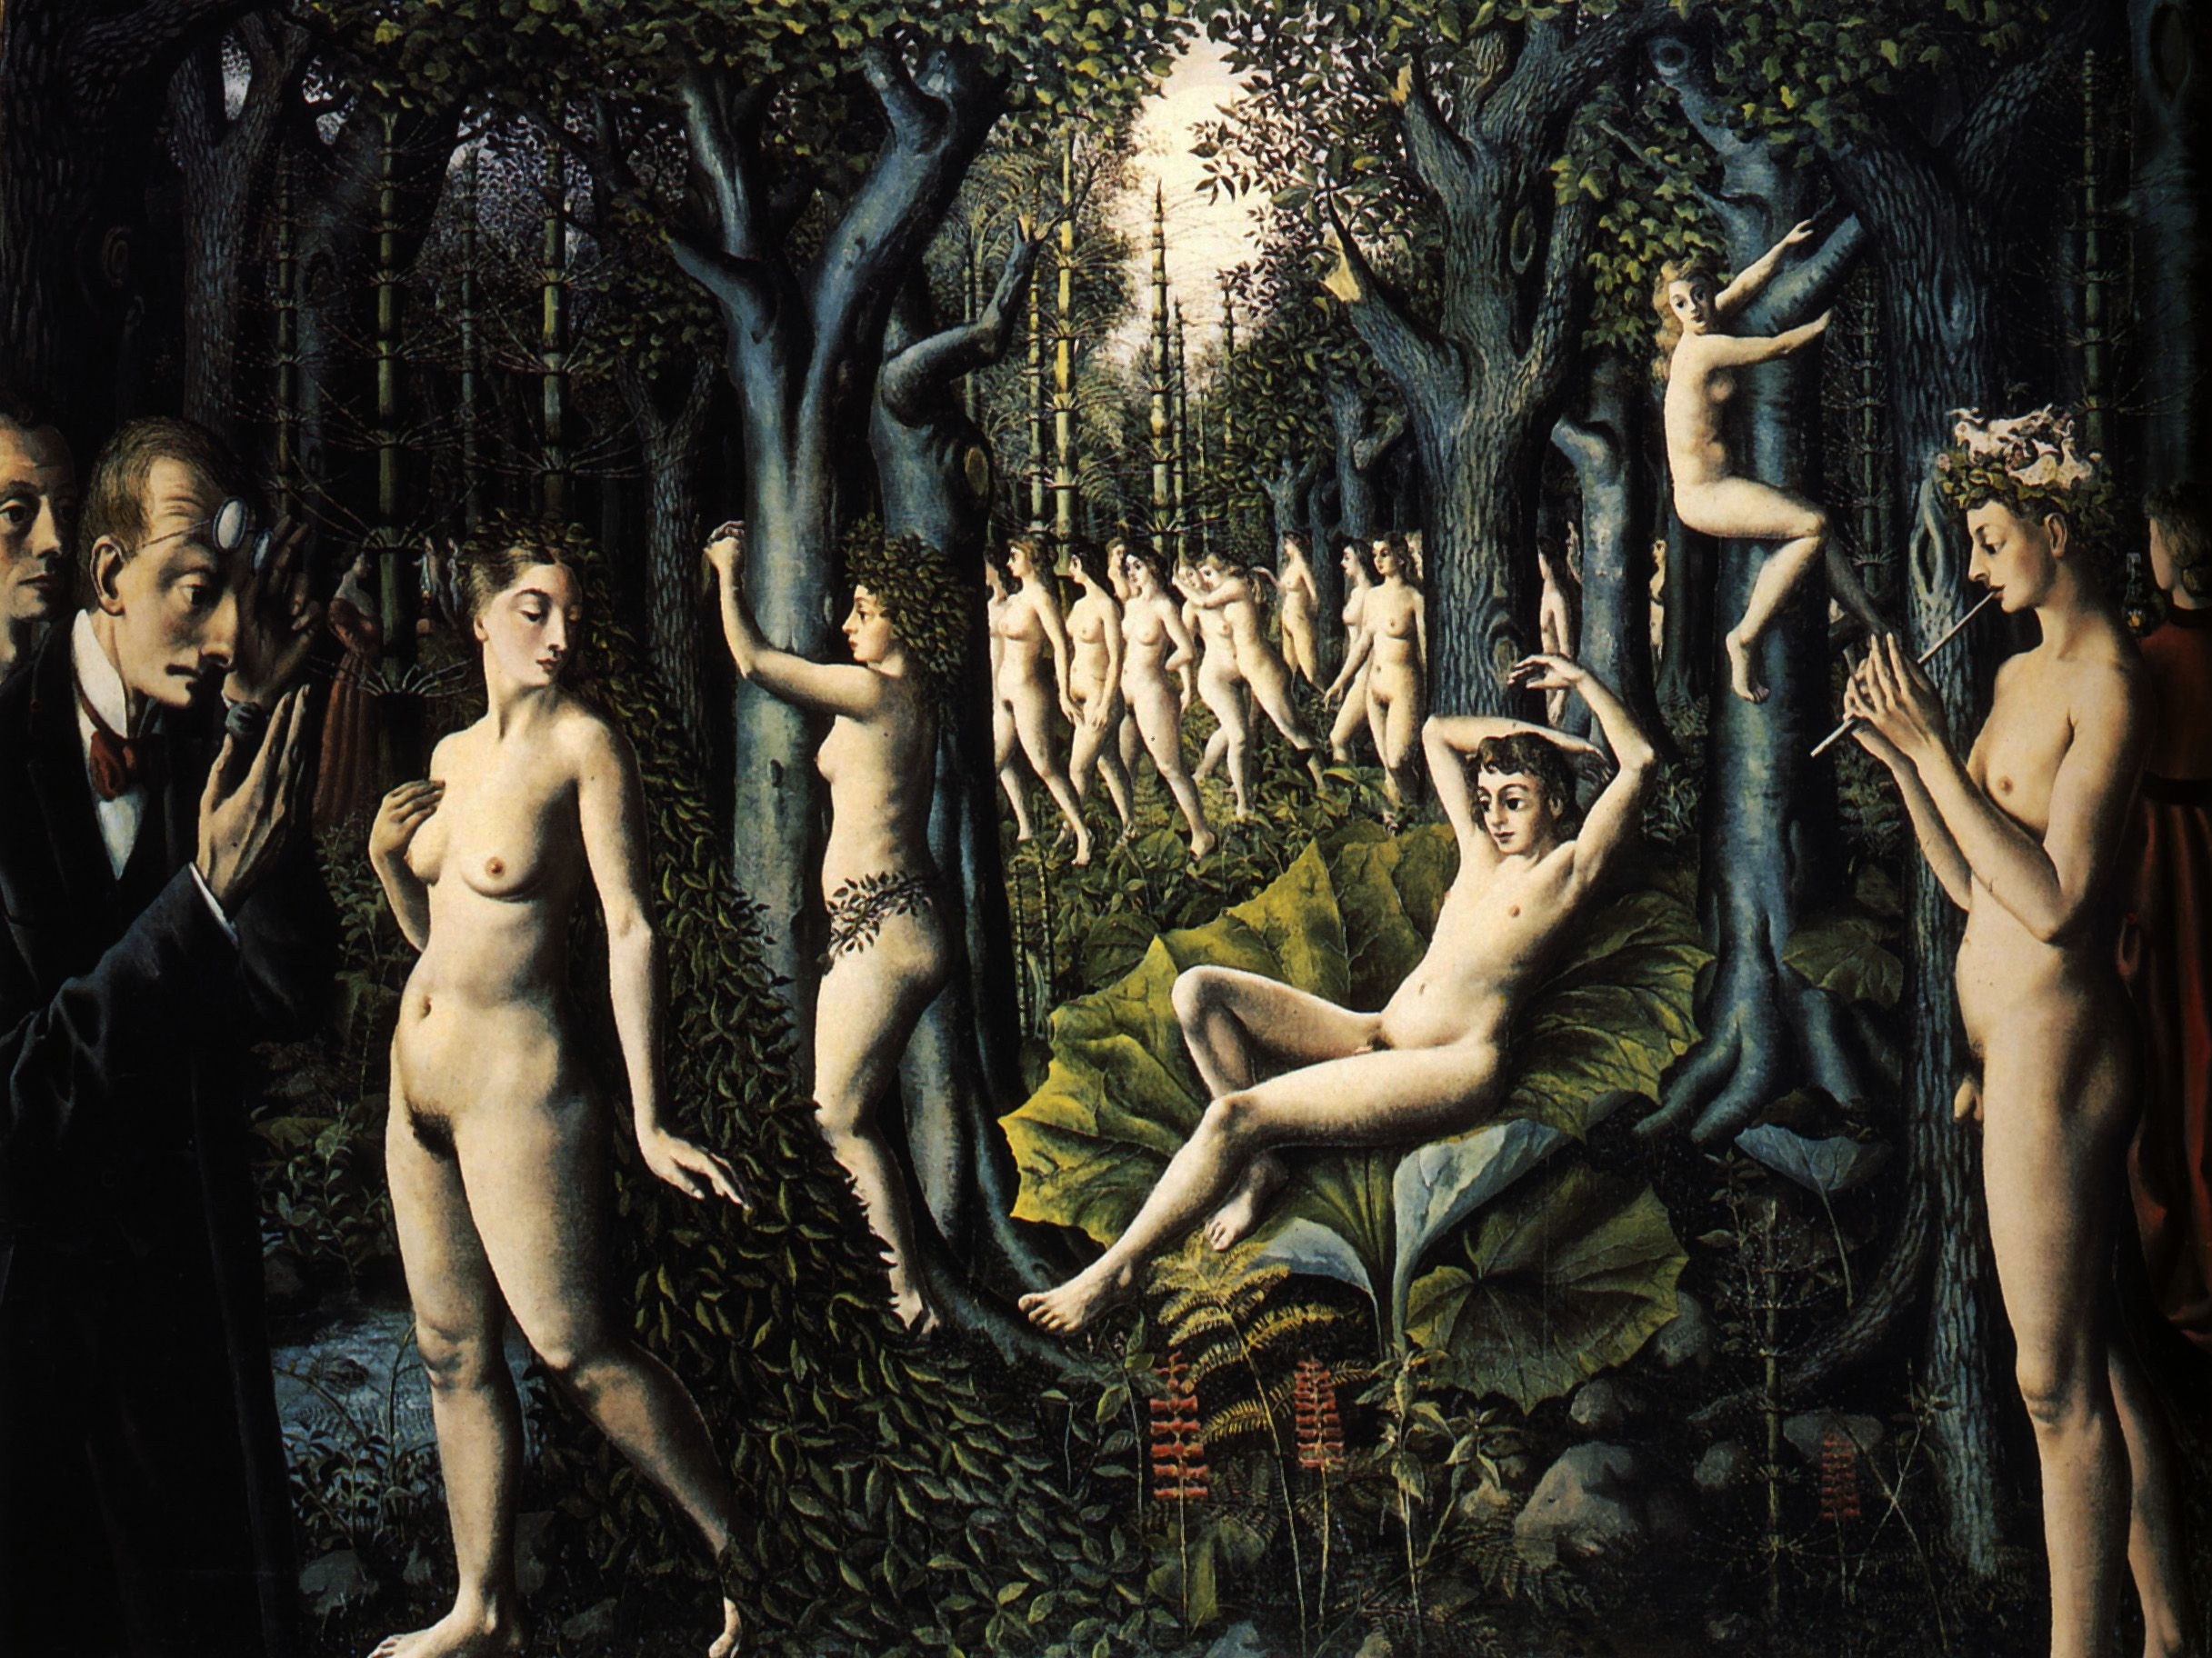 paul delvaux the awakening of the forest 1939 art paul paul delvaux the awakening of the forest 1939 art paul delvaux the forest paul delvaux and the o jays